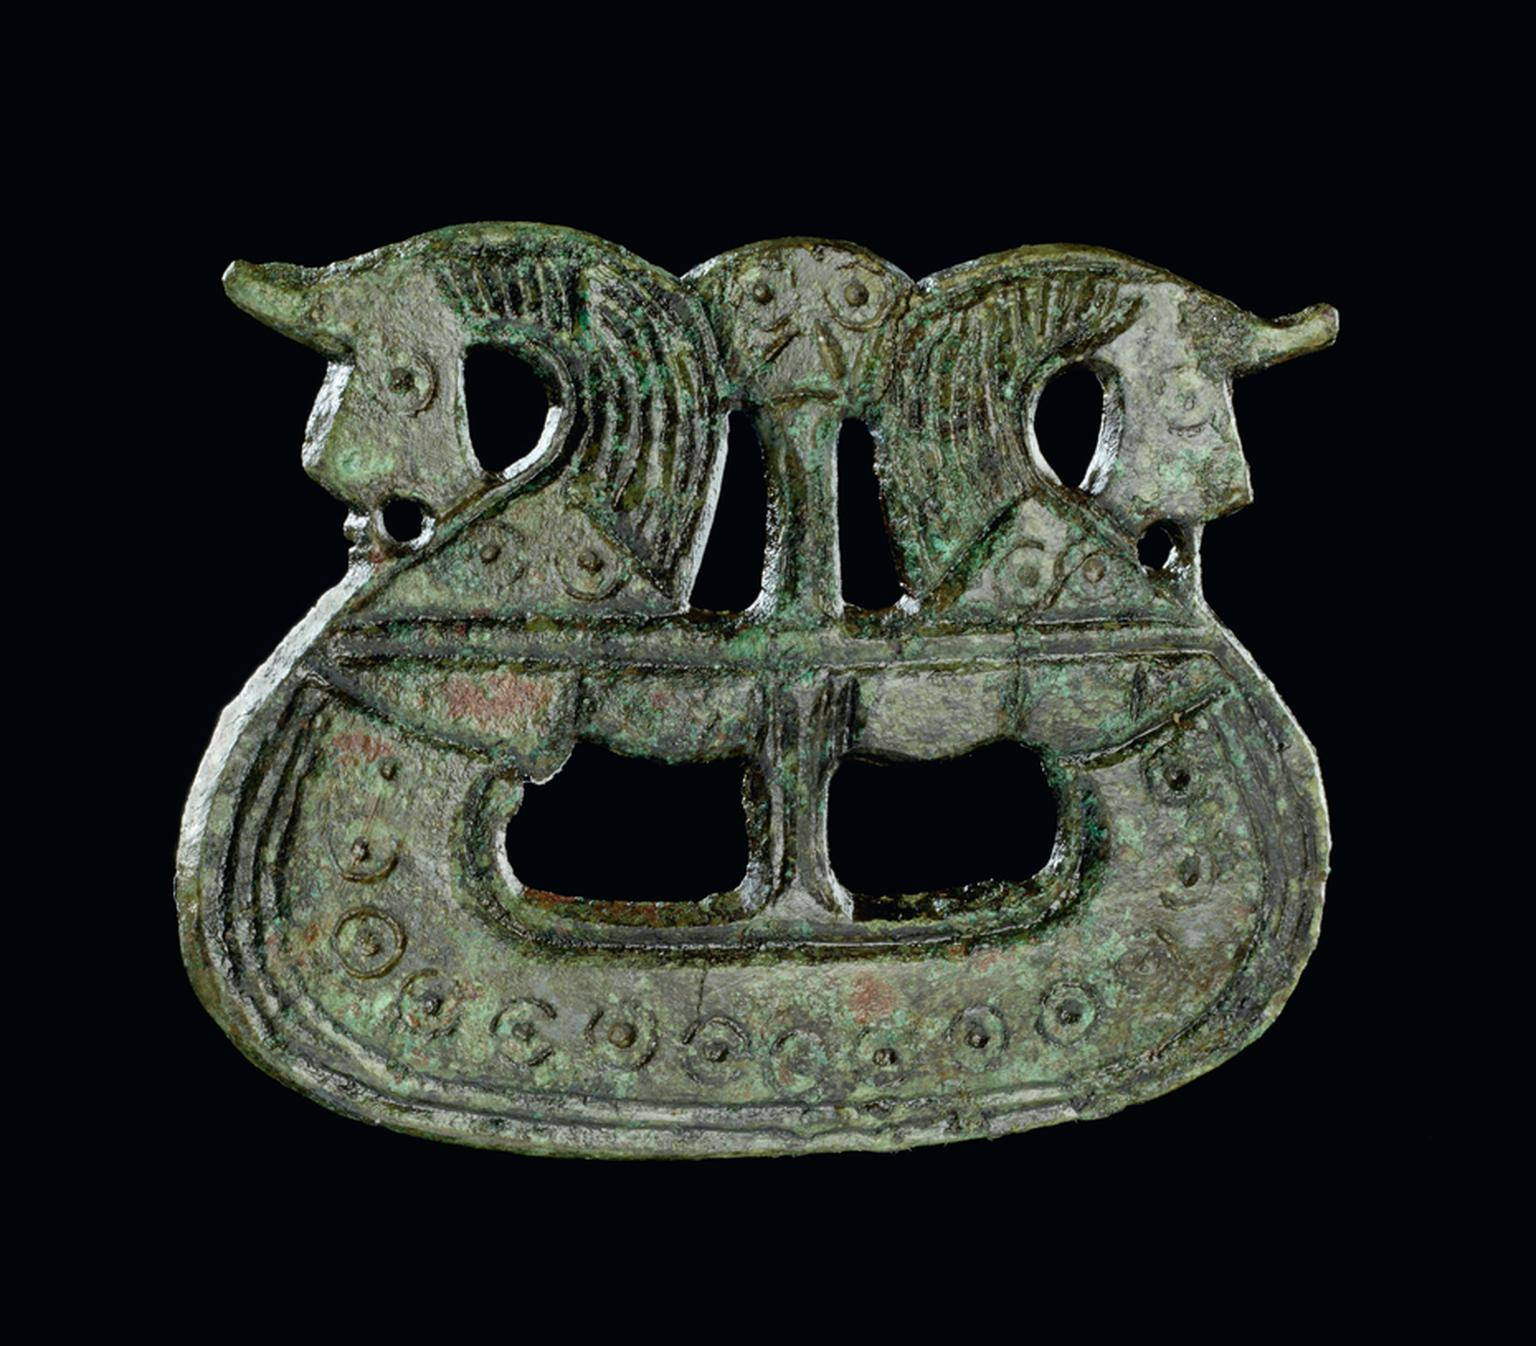 800-1050 AD copper alloy Ship brooch. Tjørnehøj II, Fyn, Denmark. © The National Museum of Denmark